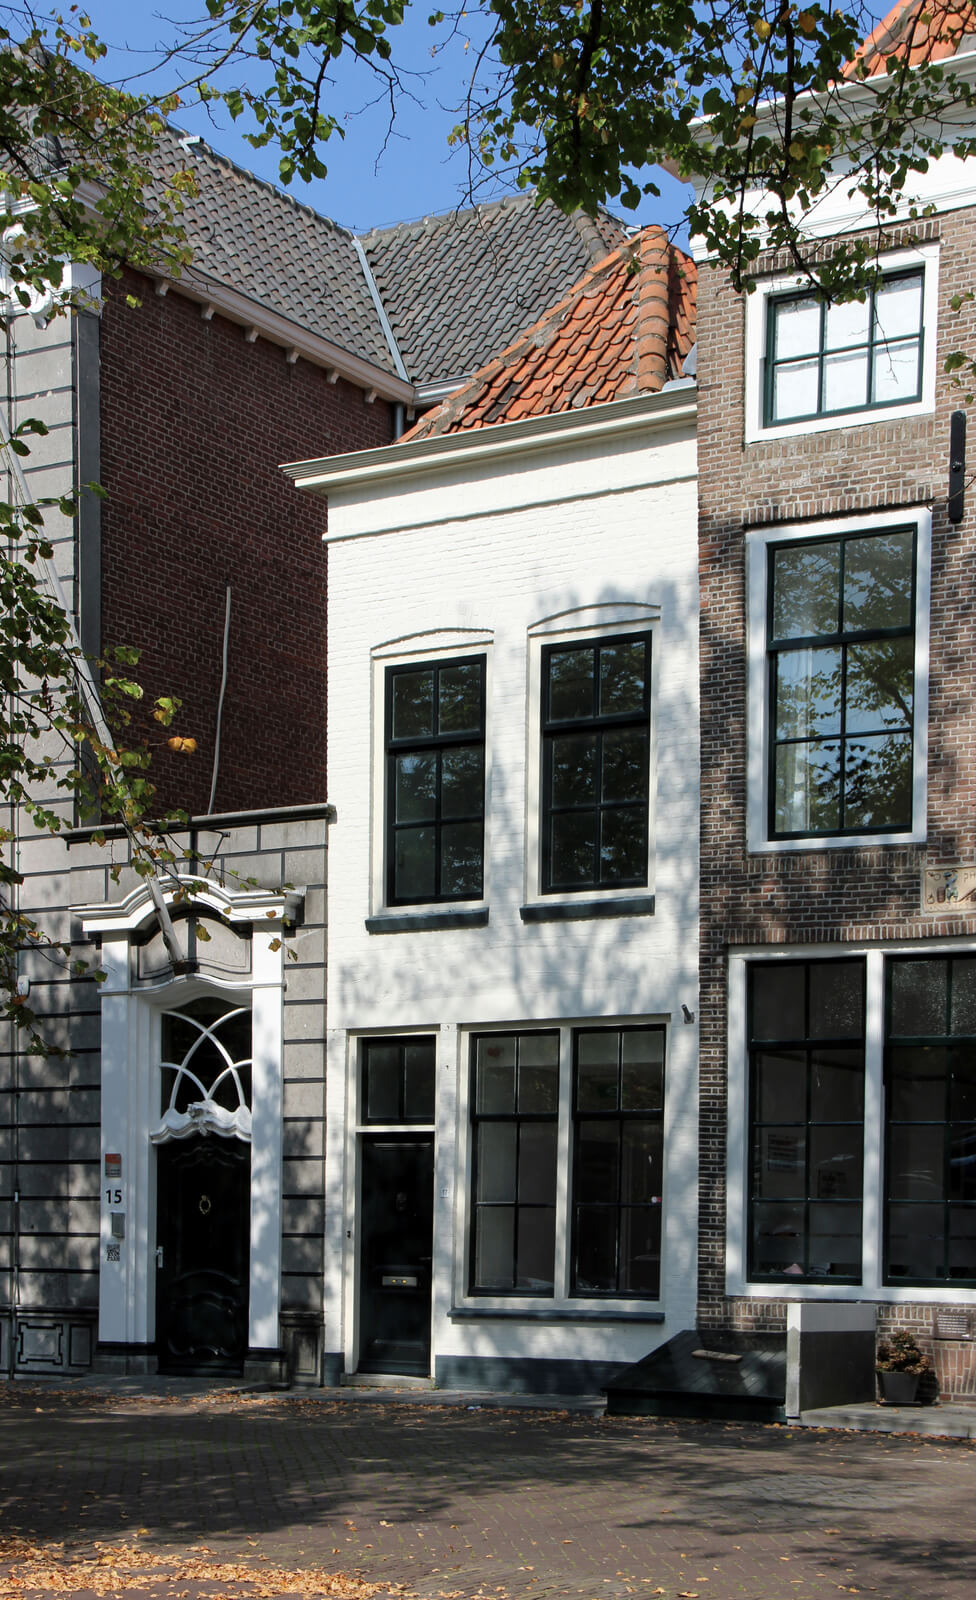 Daylight Award FlushglazeHouse 20x3 in Zierikzee